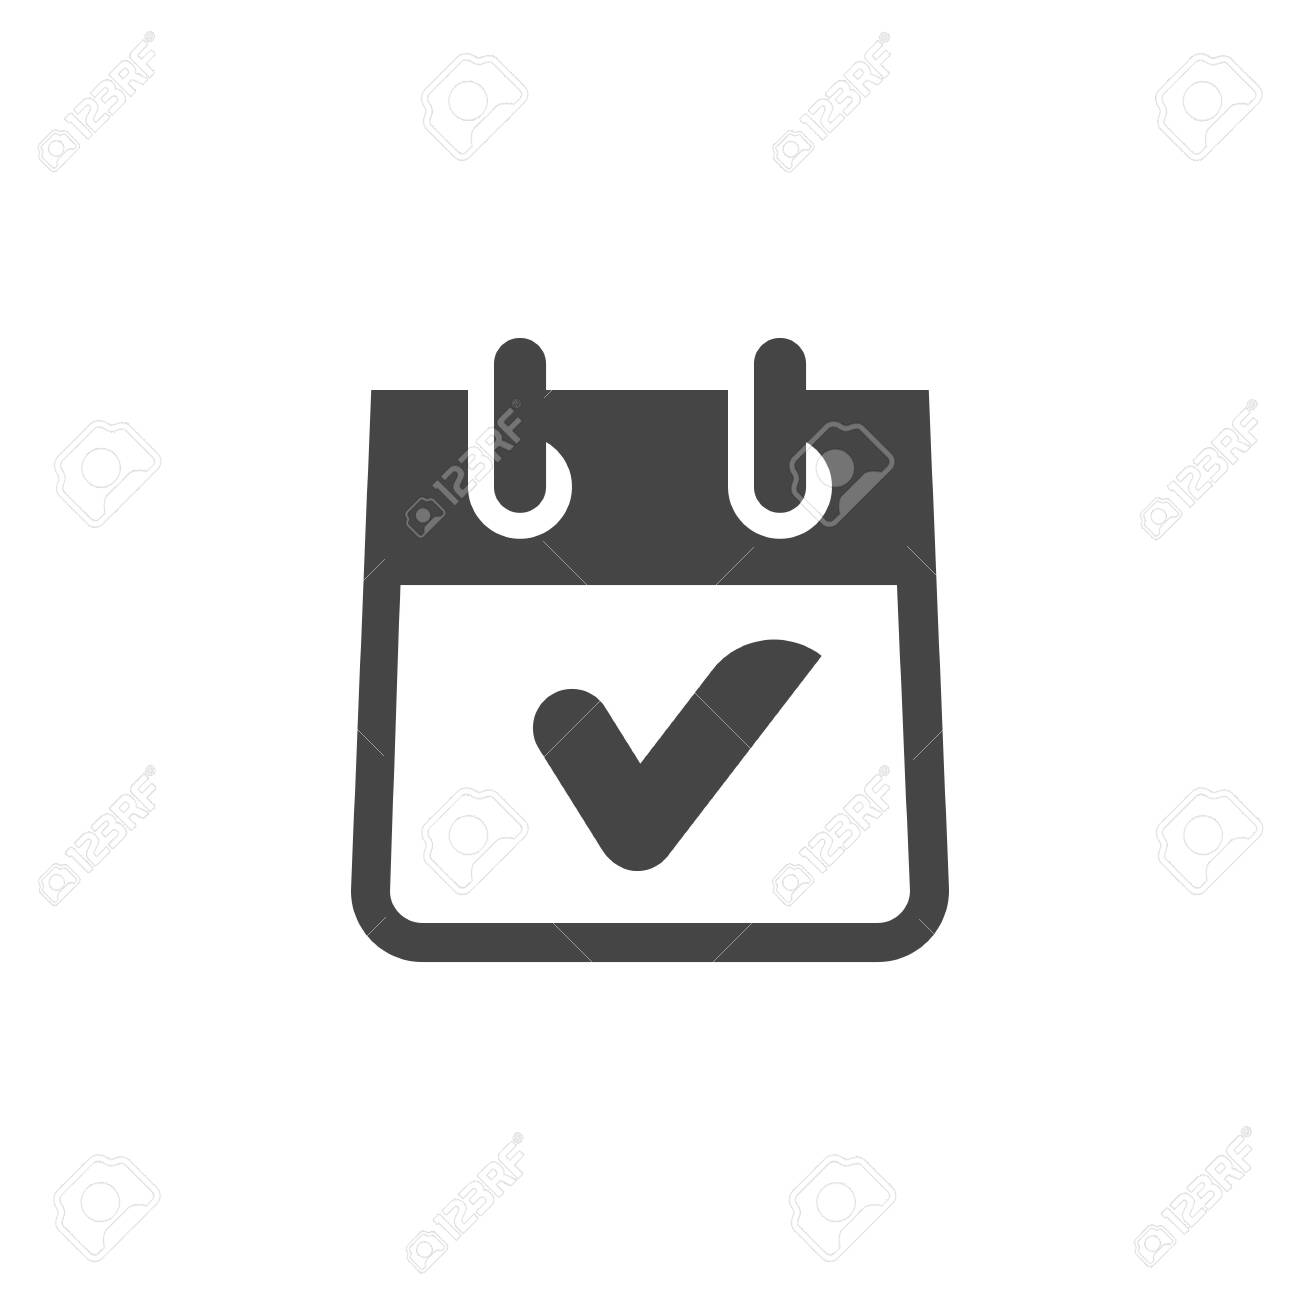 Icon of Calendar with Check Mark in Glyph Style  Completed Task,